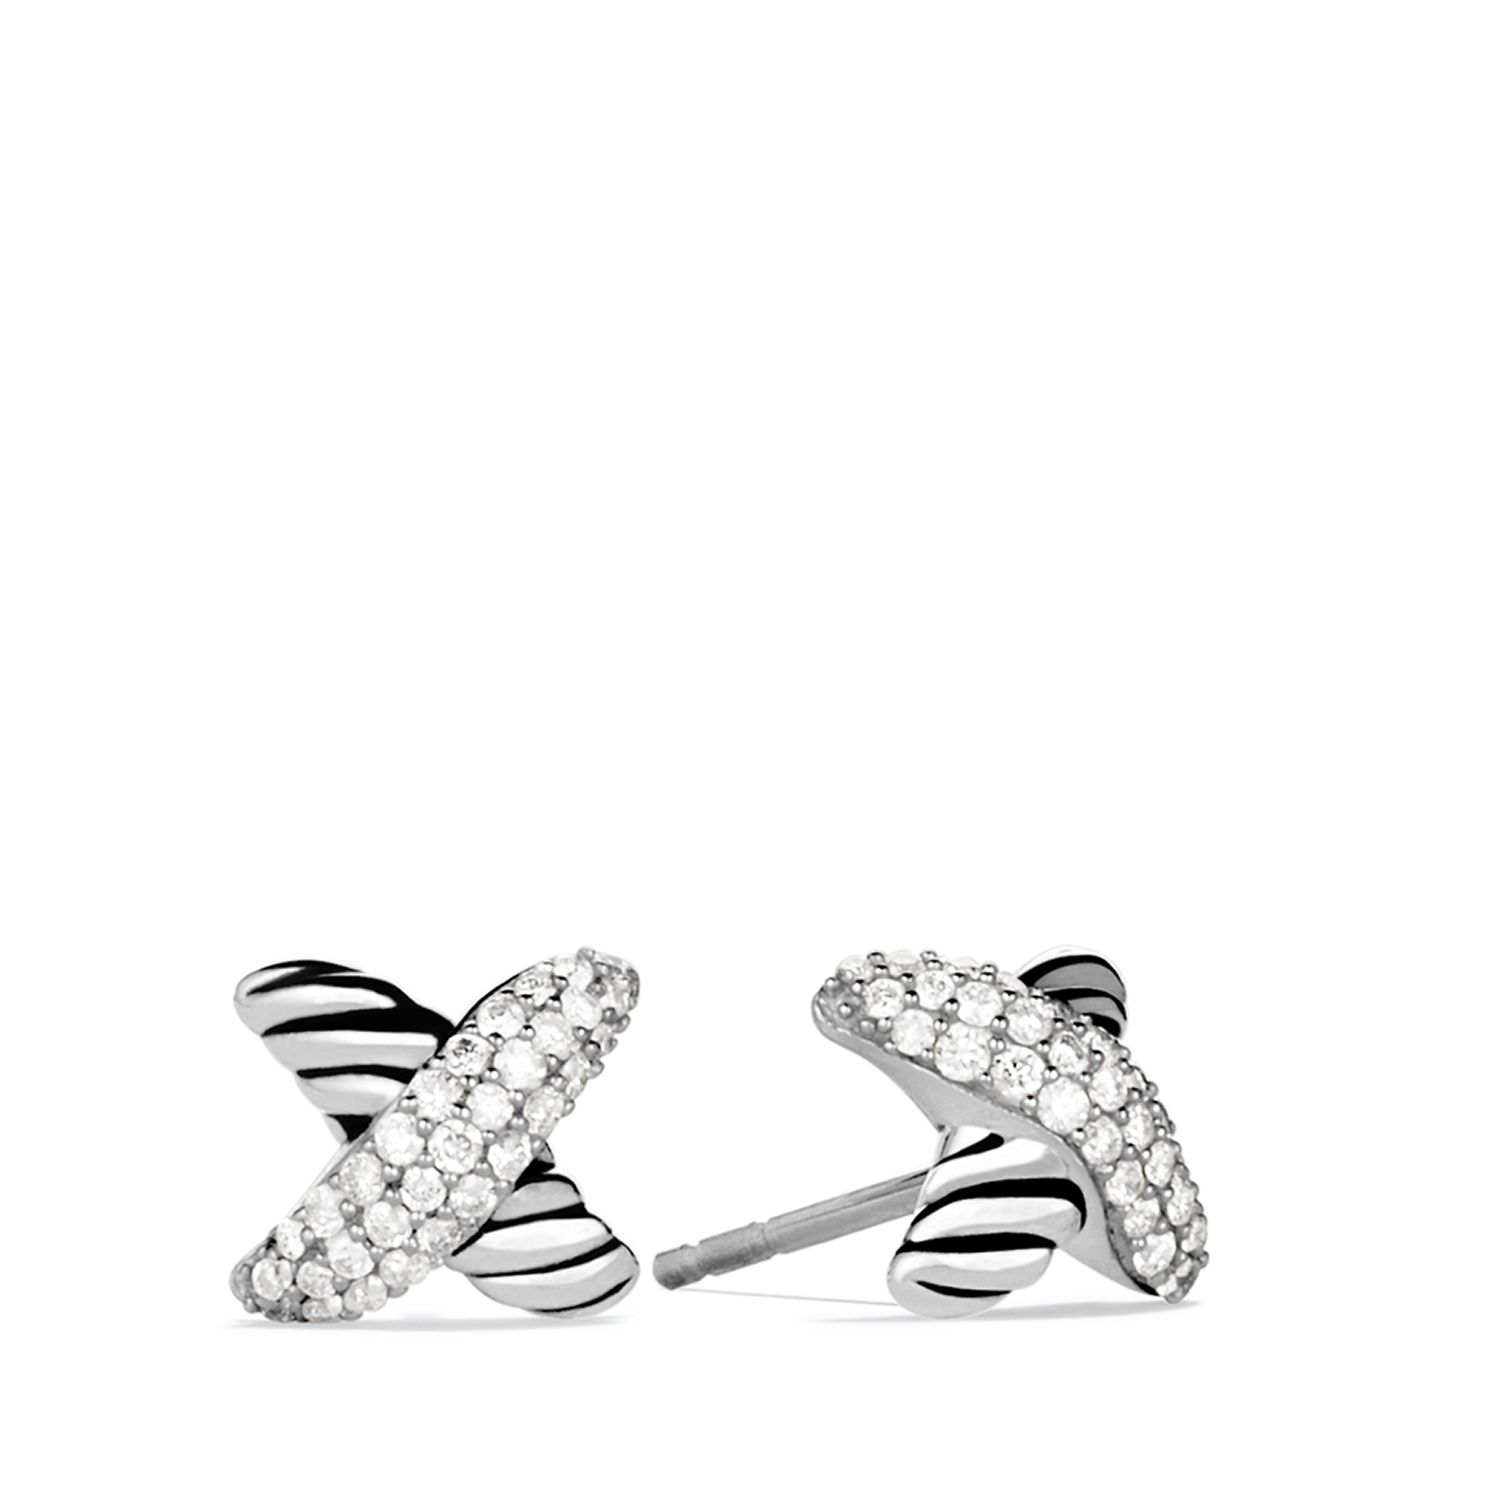 X earrings with diamonds jewelry pinterest diamond david